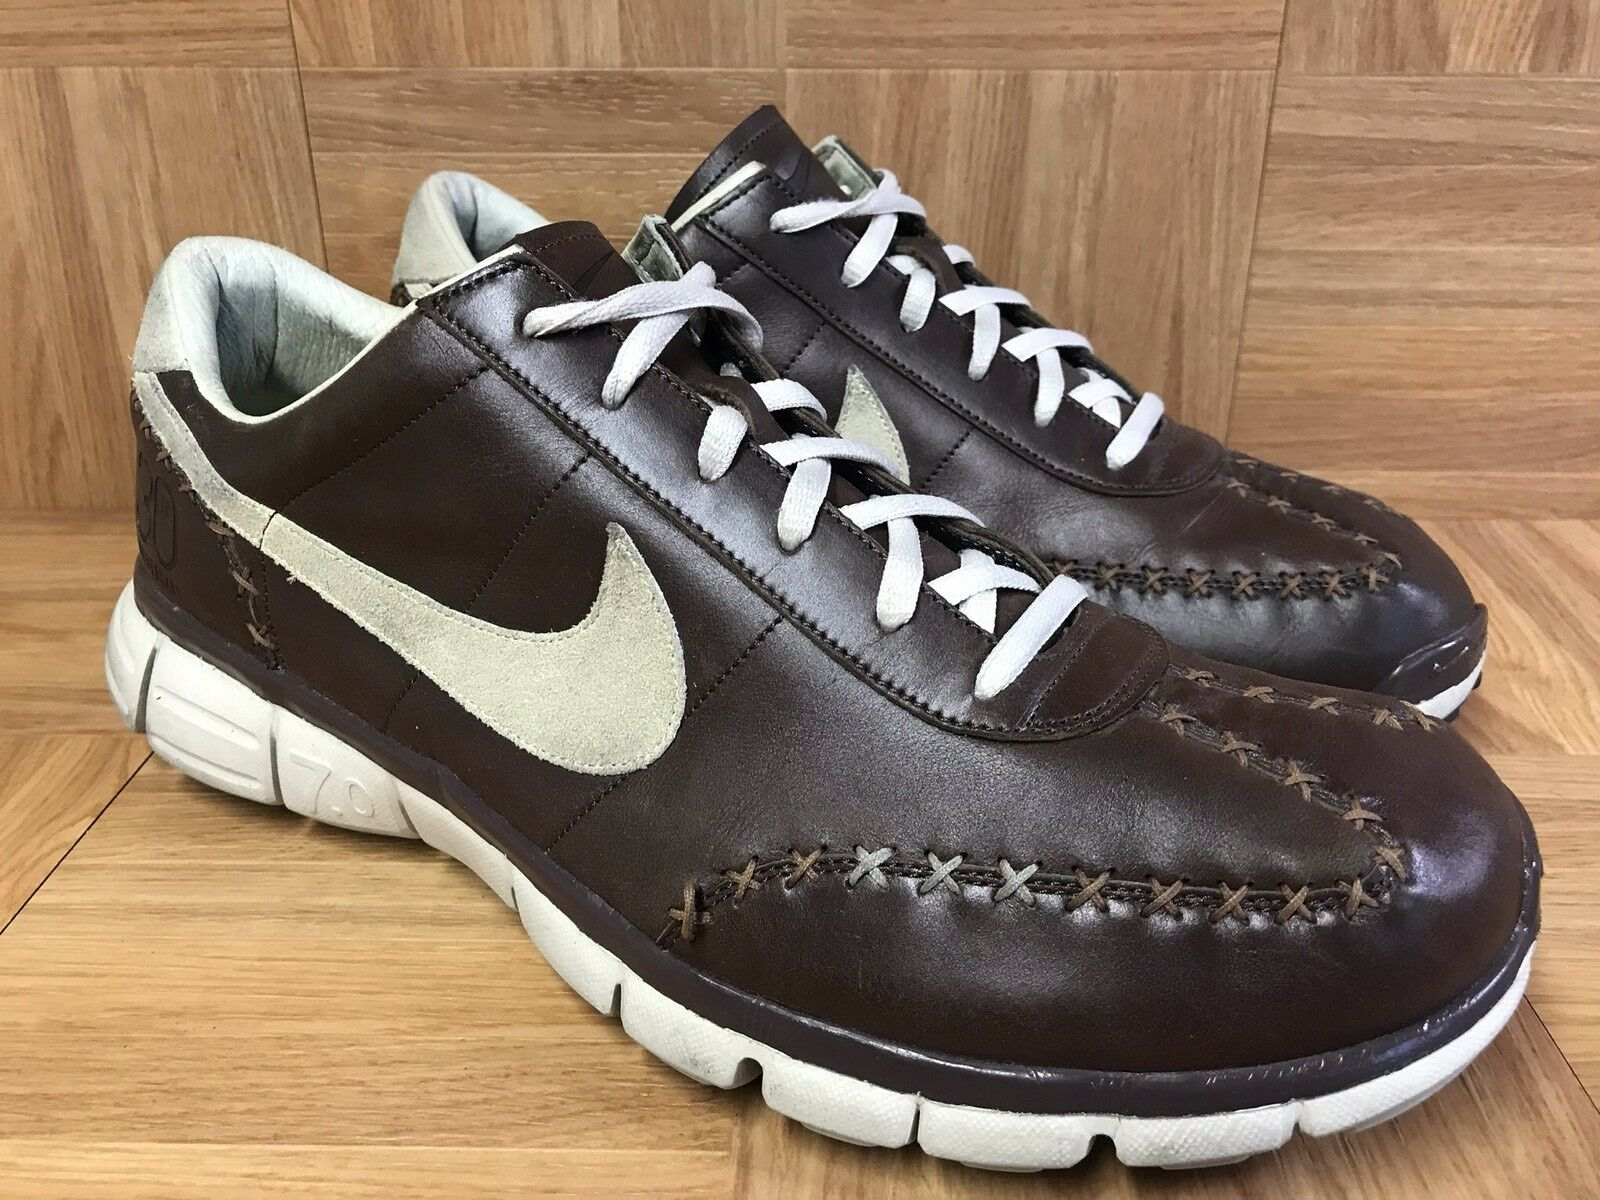 RARE Nike Free Run 7.0 Brown Sewn Stitched Grain Premium Leather Sz 13 Men's